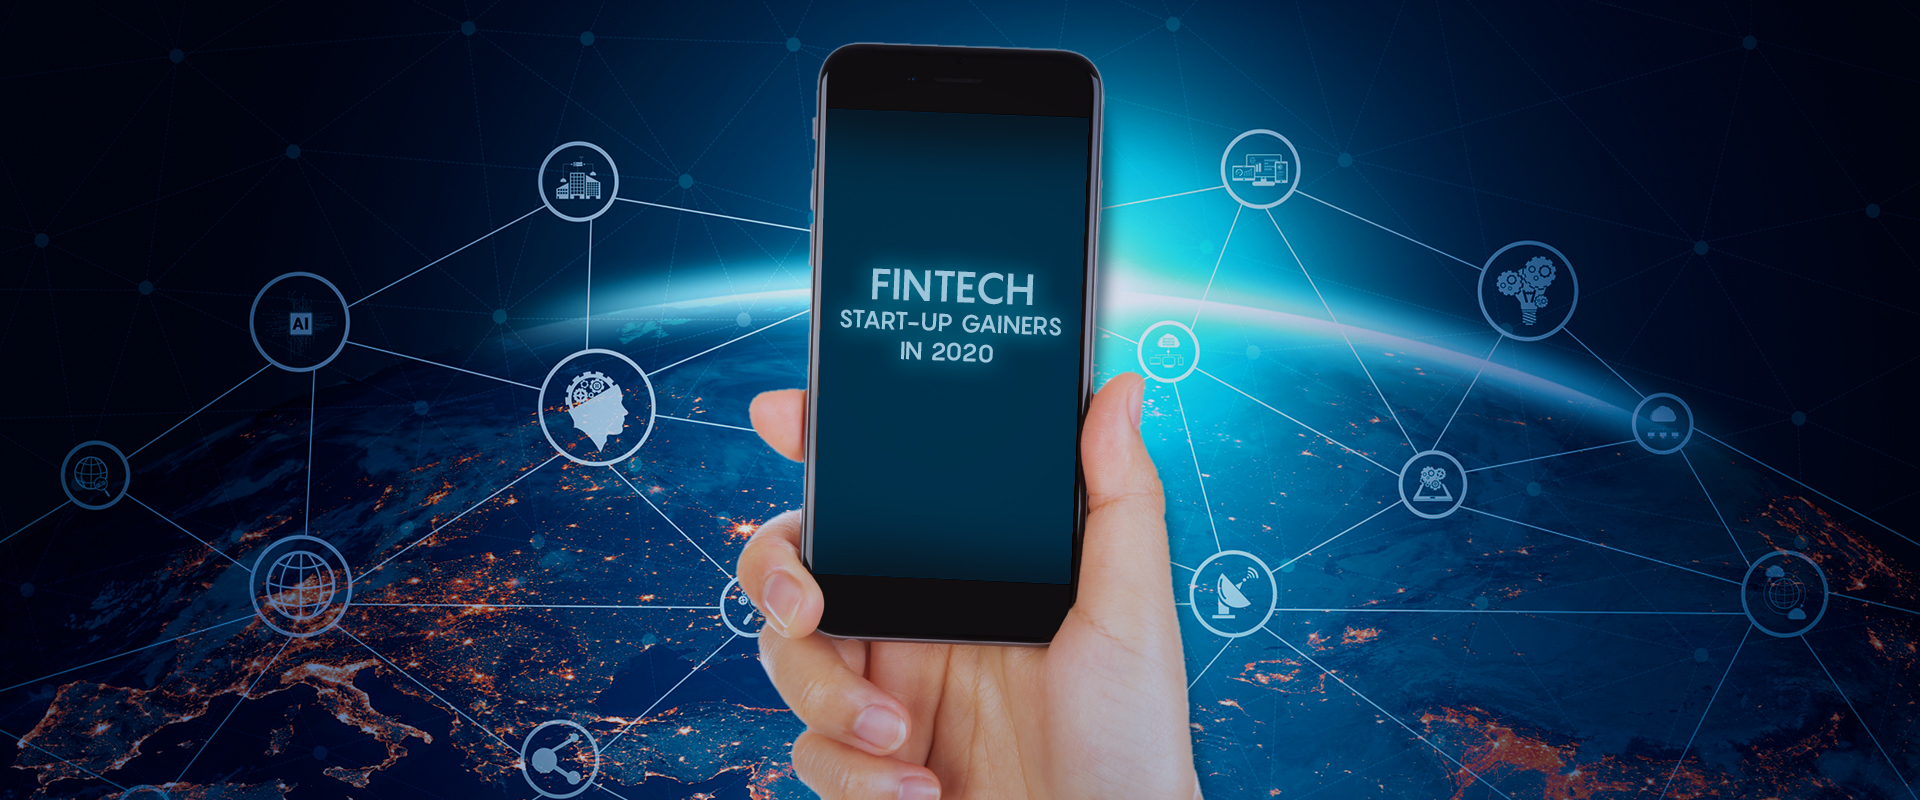 FinTech Sector Attracted $2.37 Billion in funding in 2020, which Start-ups were Gainers?